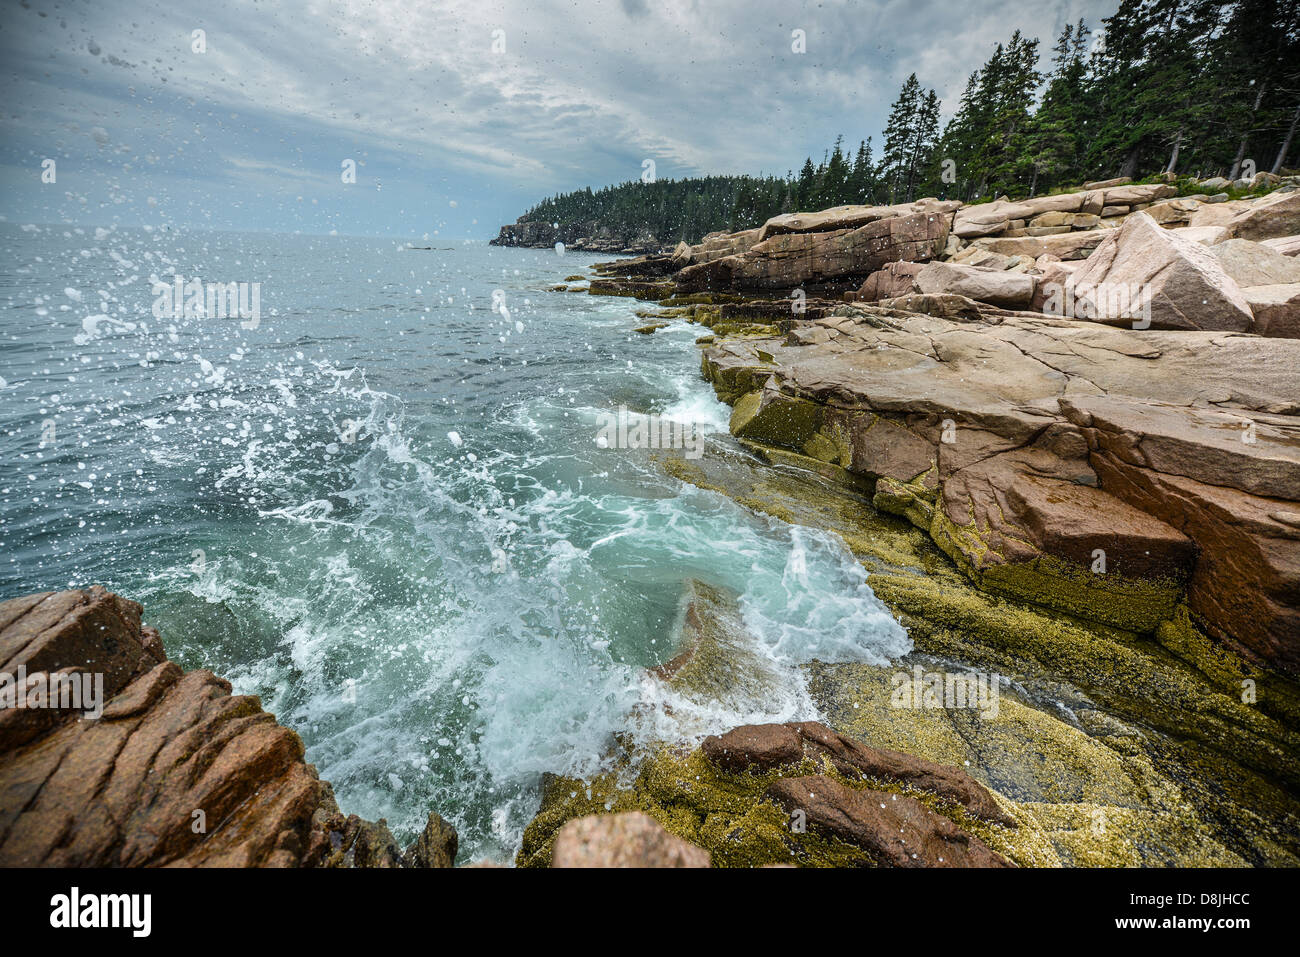 Cliffs of Acadia National Park in Maine, USA Stock Photo